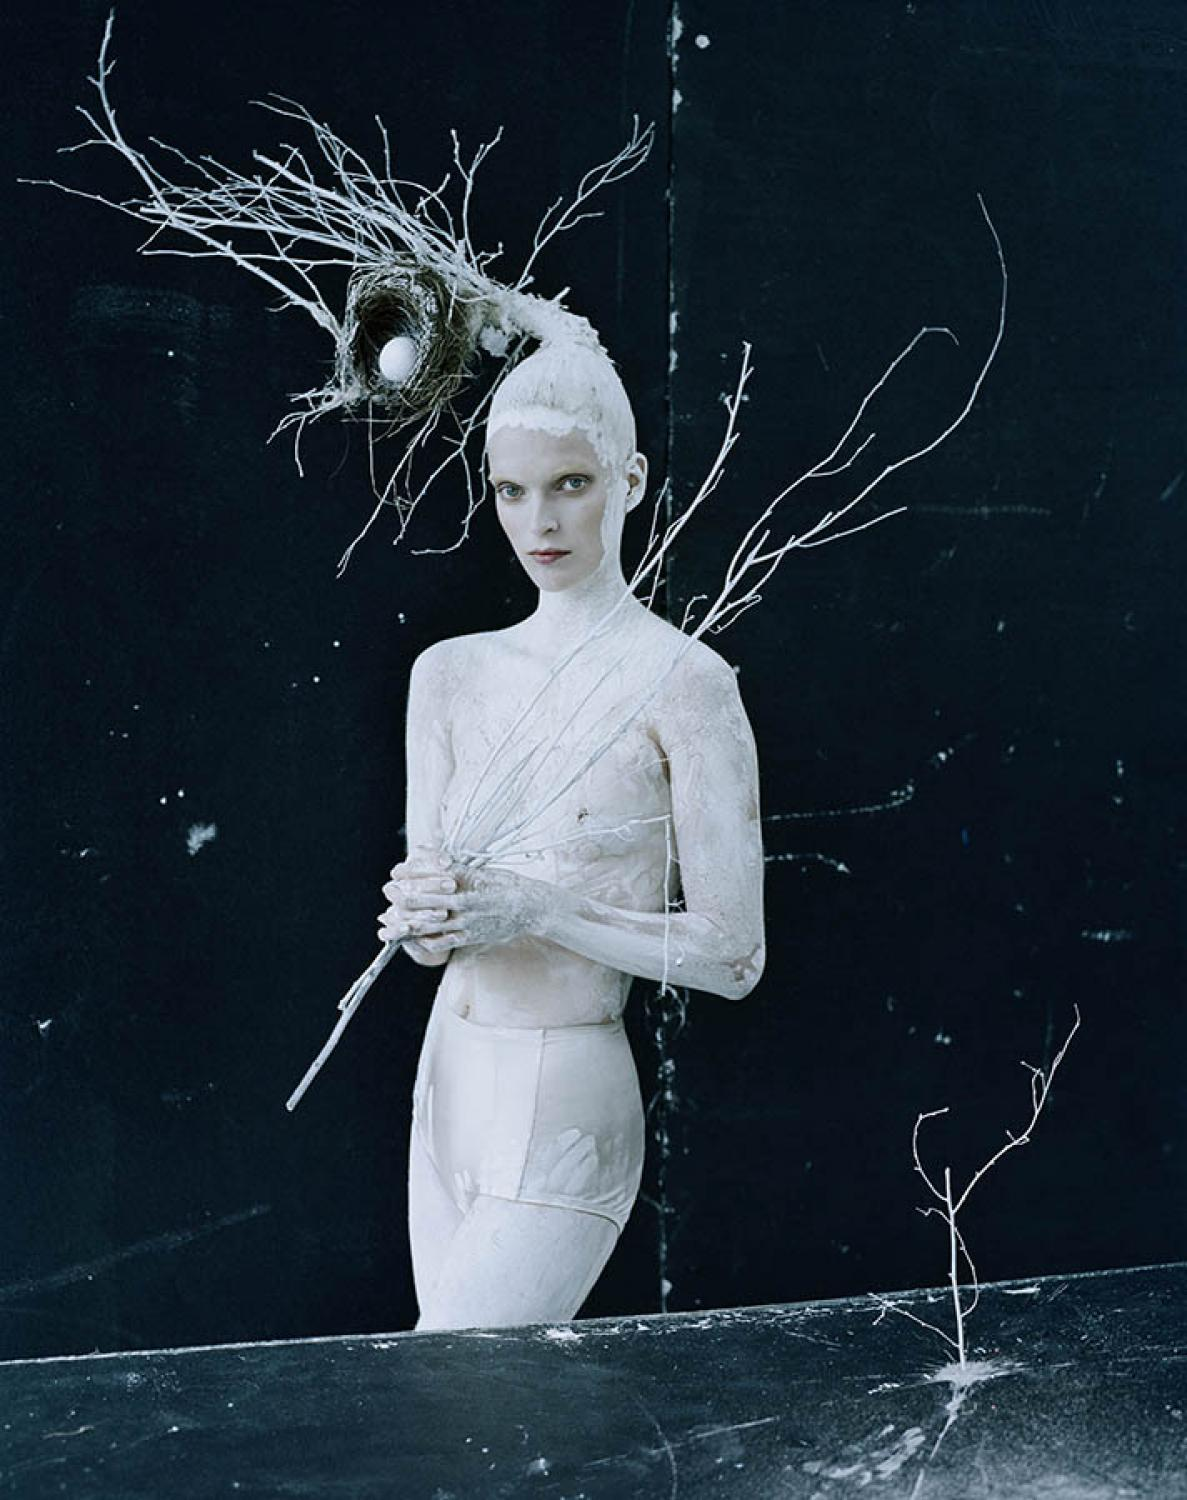 SHE CASTS A SPELL - TIM WALKER PHOTOGRAPHY FOR VOGUE ITALIA